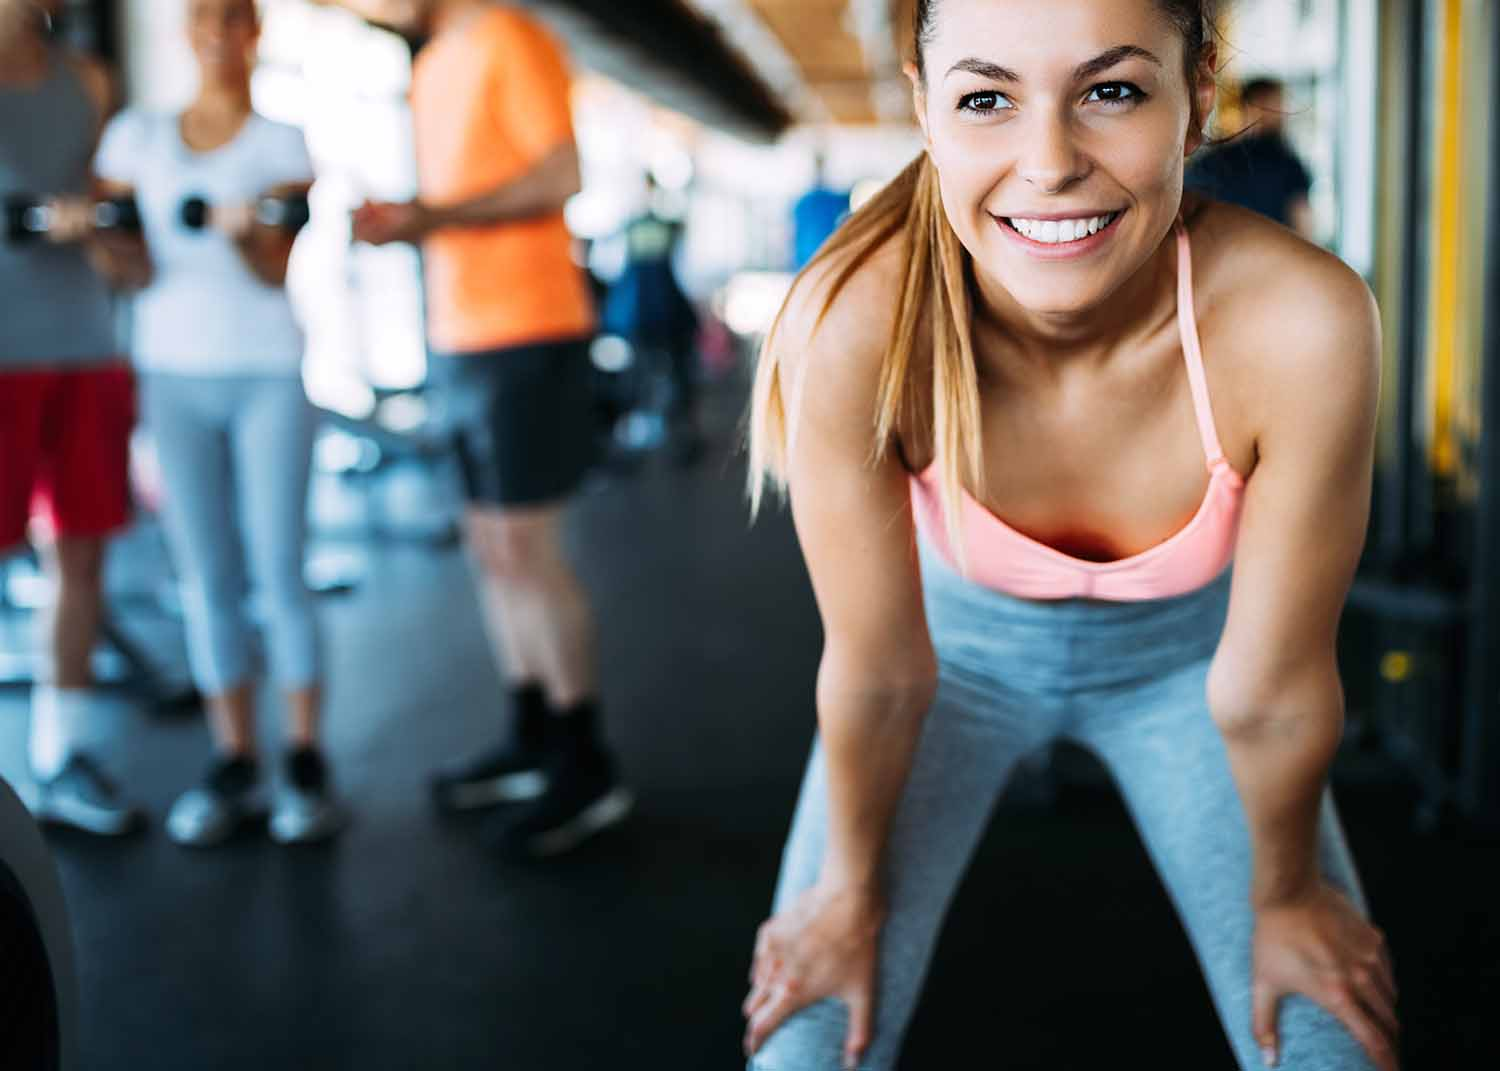 Envisagym Personal Training Gym Ranelagh Dublin From €139 Per Month Our Services Woman Smiling Gym